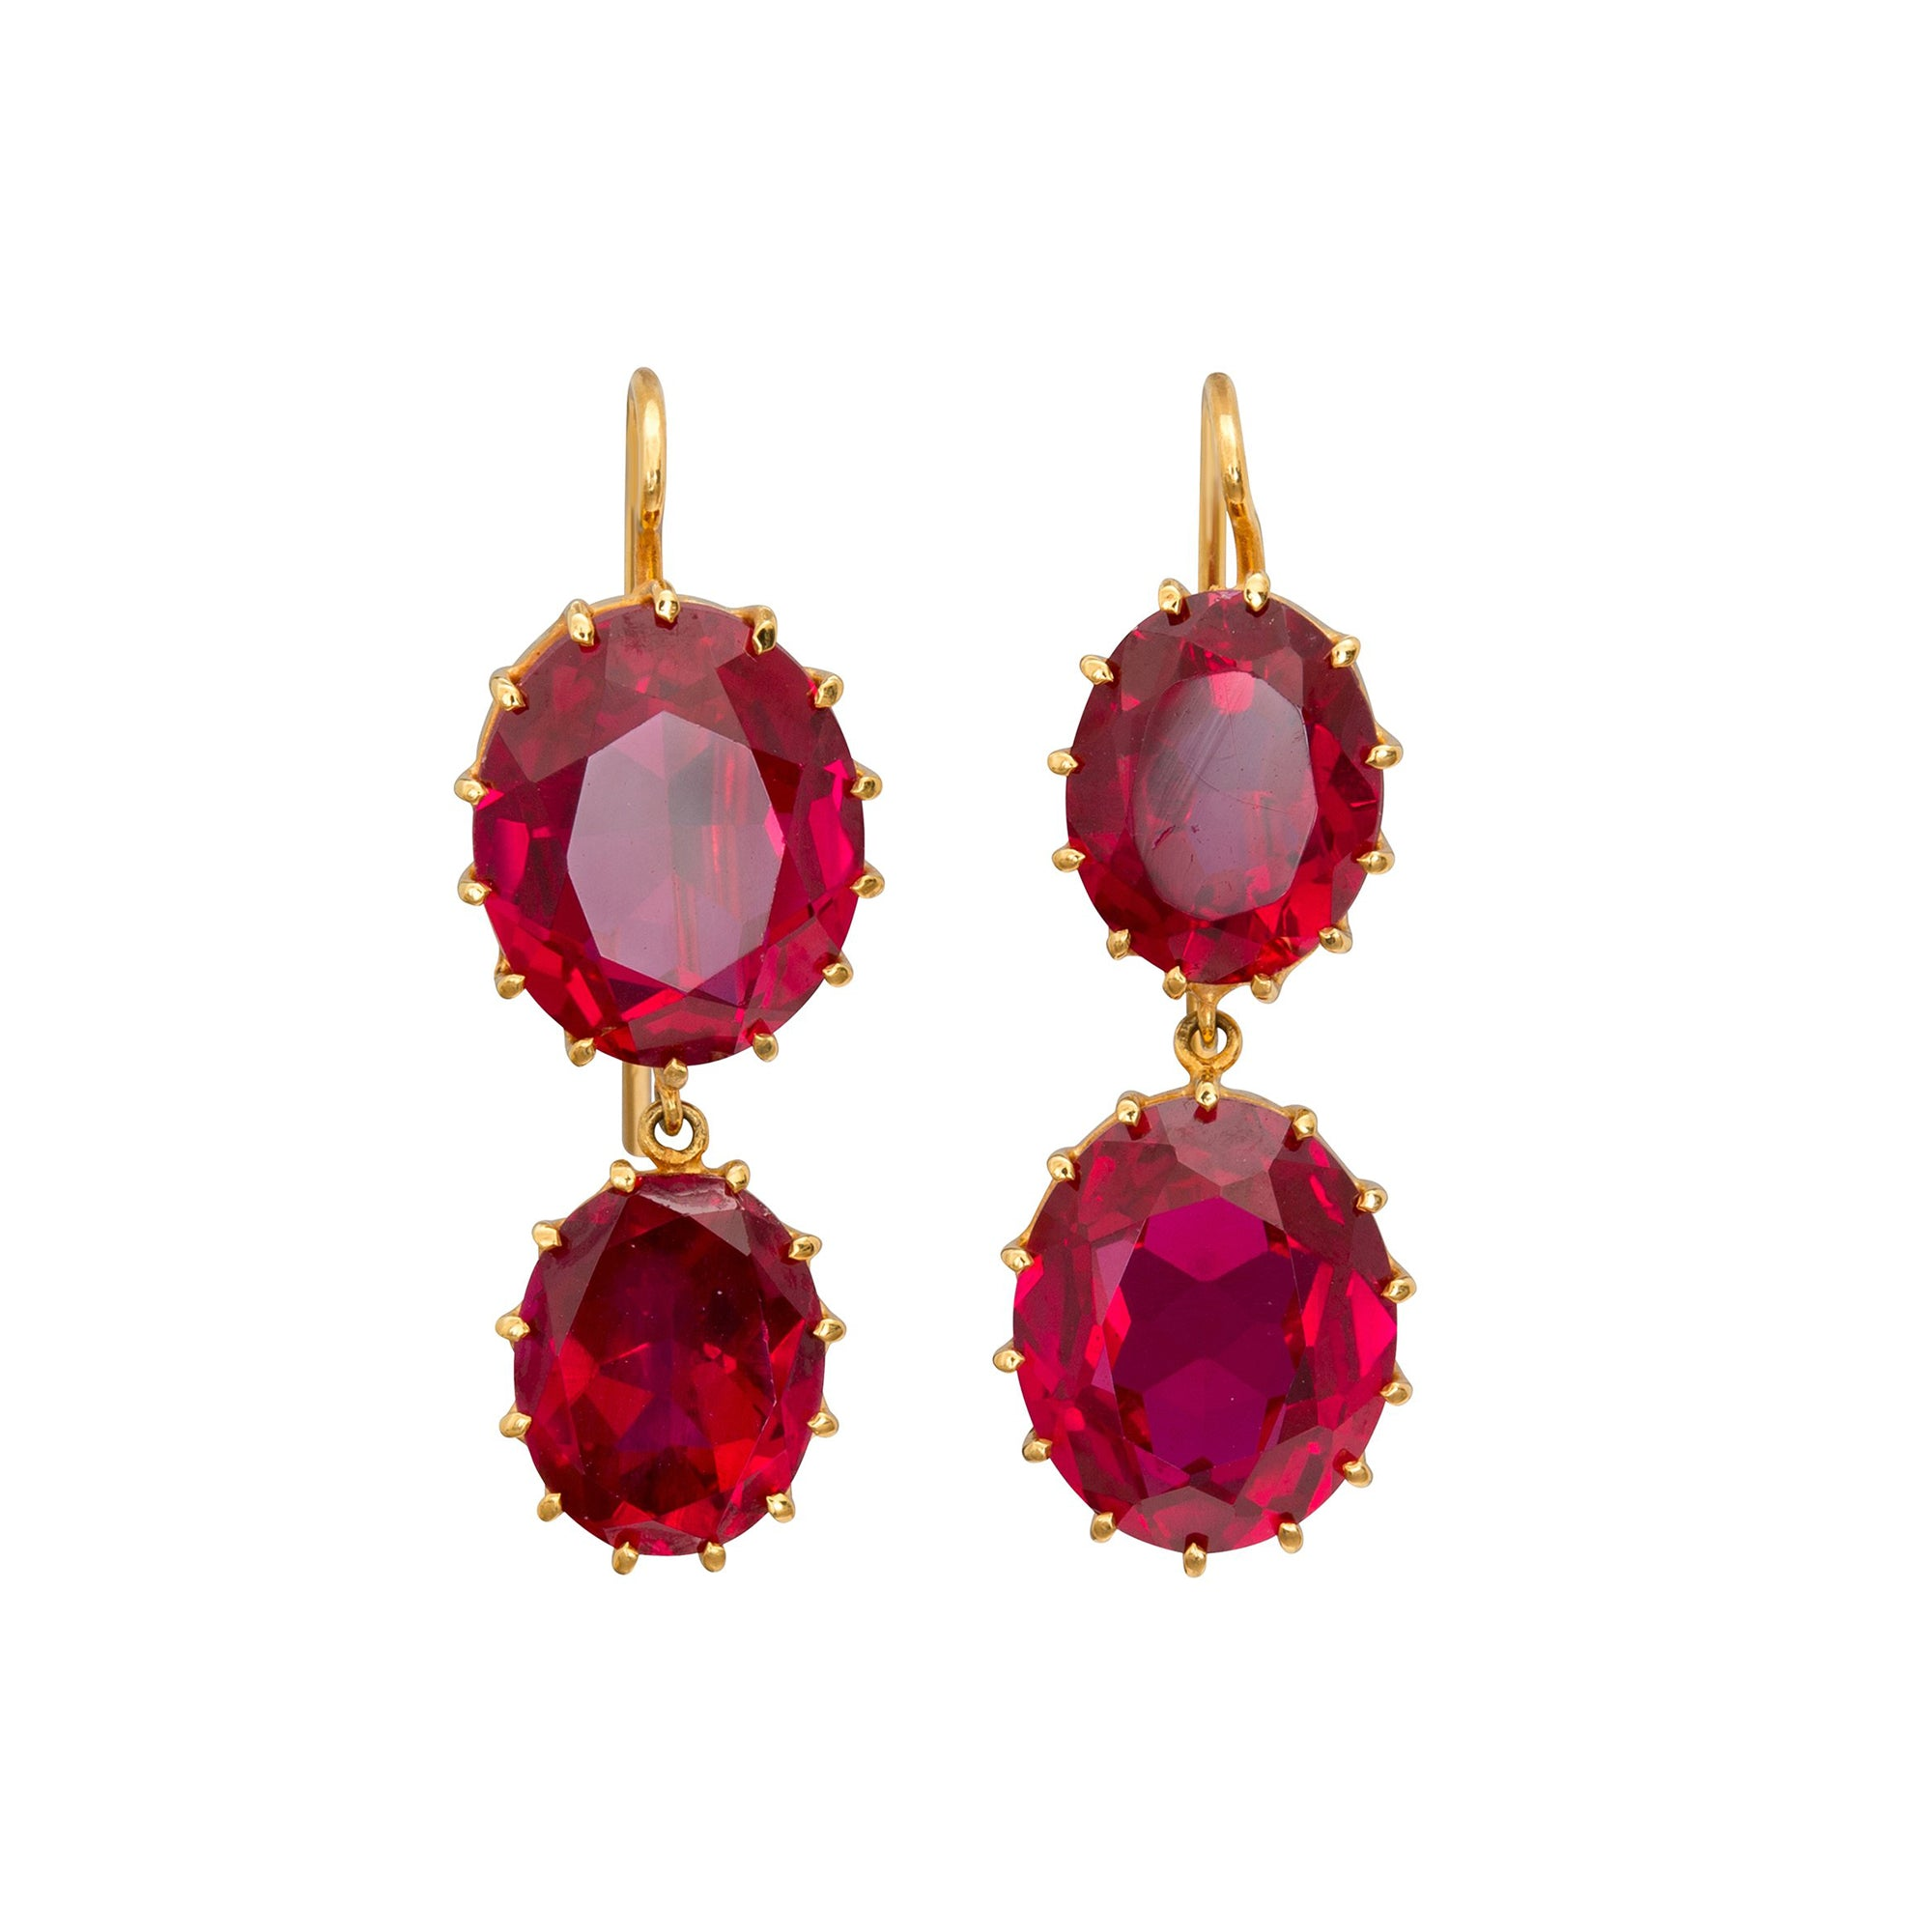 Synthetic Ruby Earrings by Renee Lewis for Broken English Jewelry